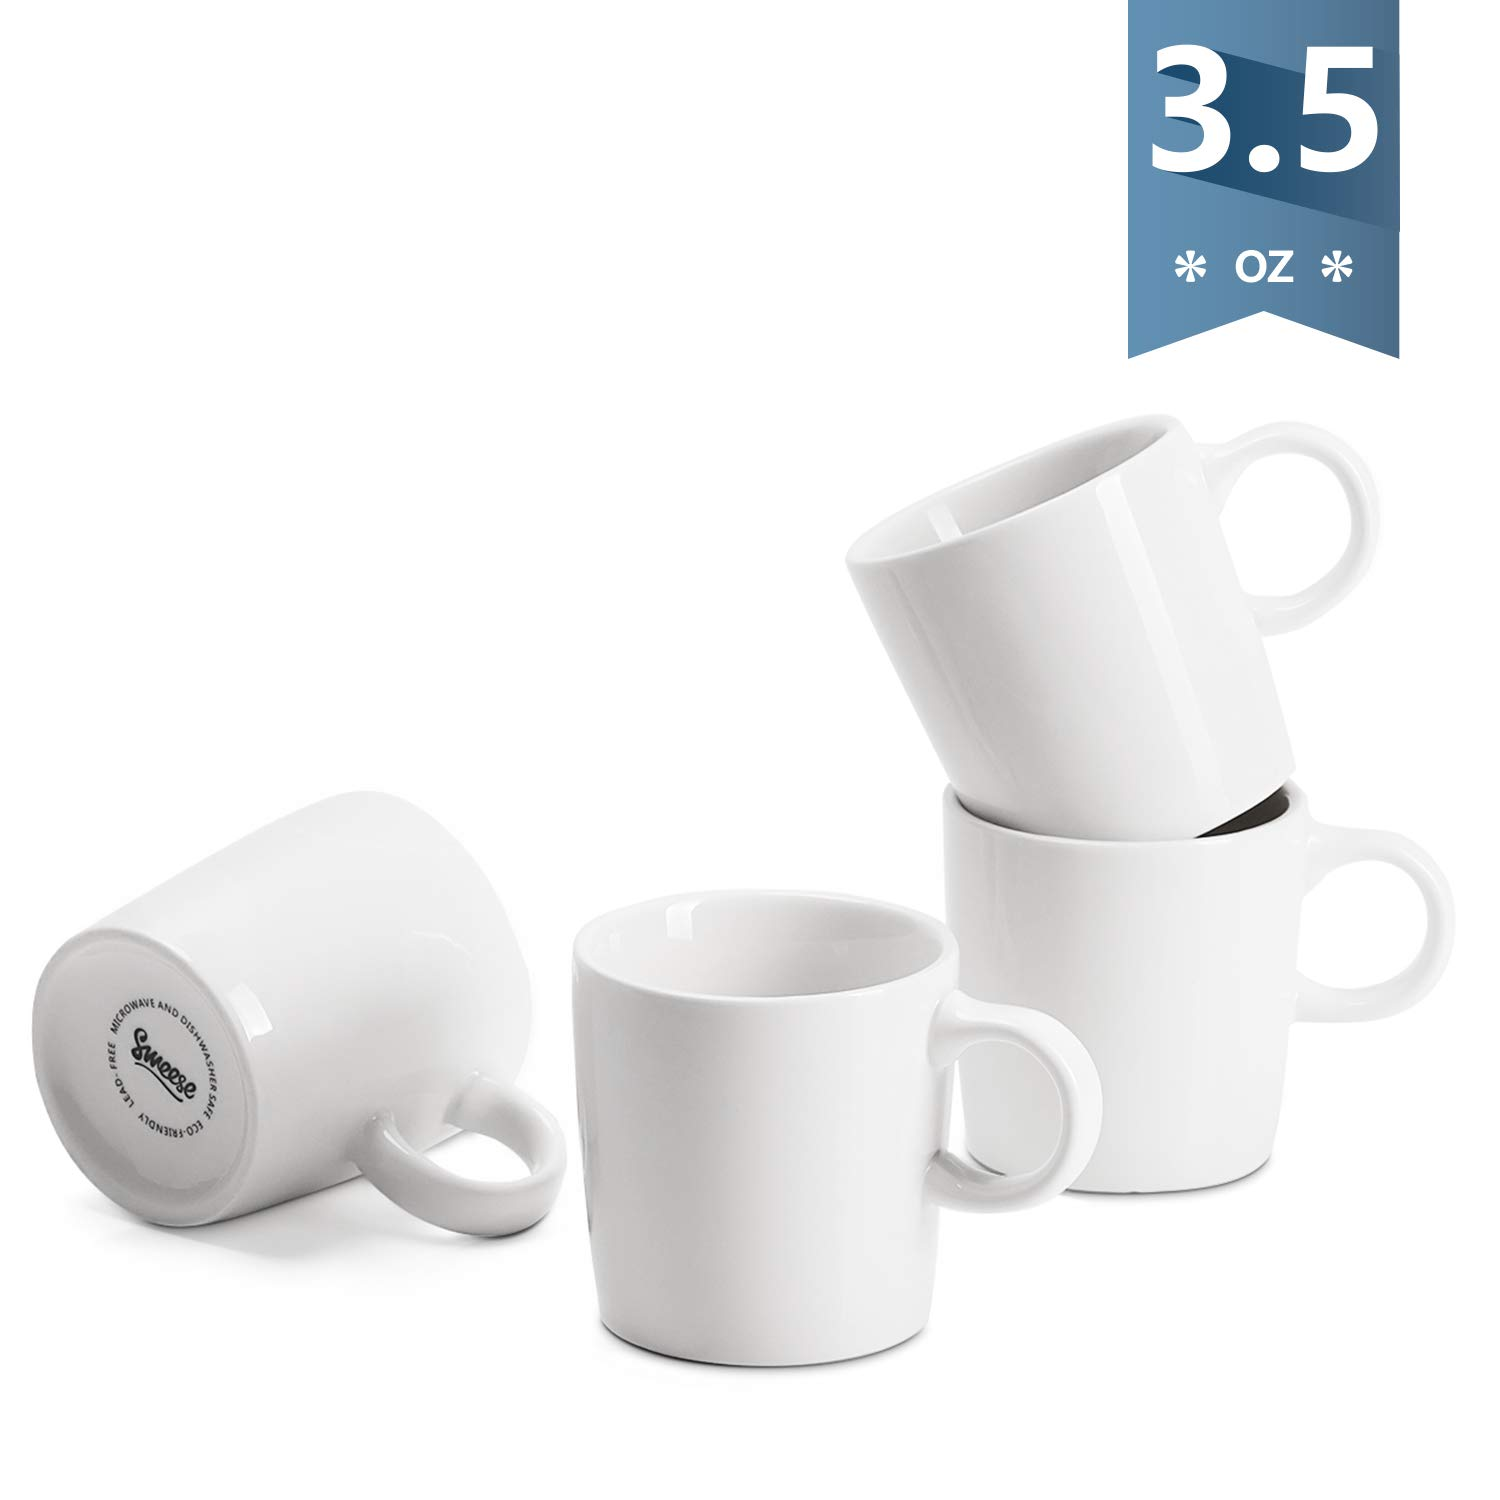 Sweese 409 101 Porcelain Espresso Cups